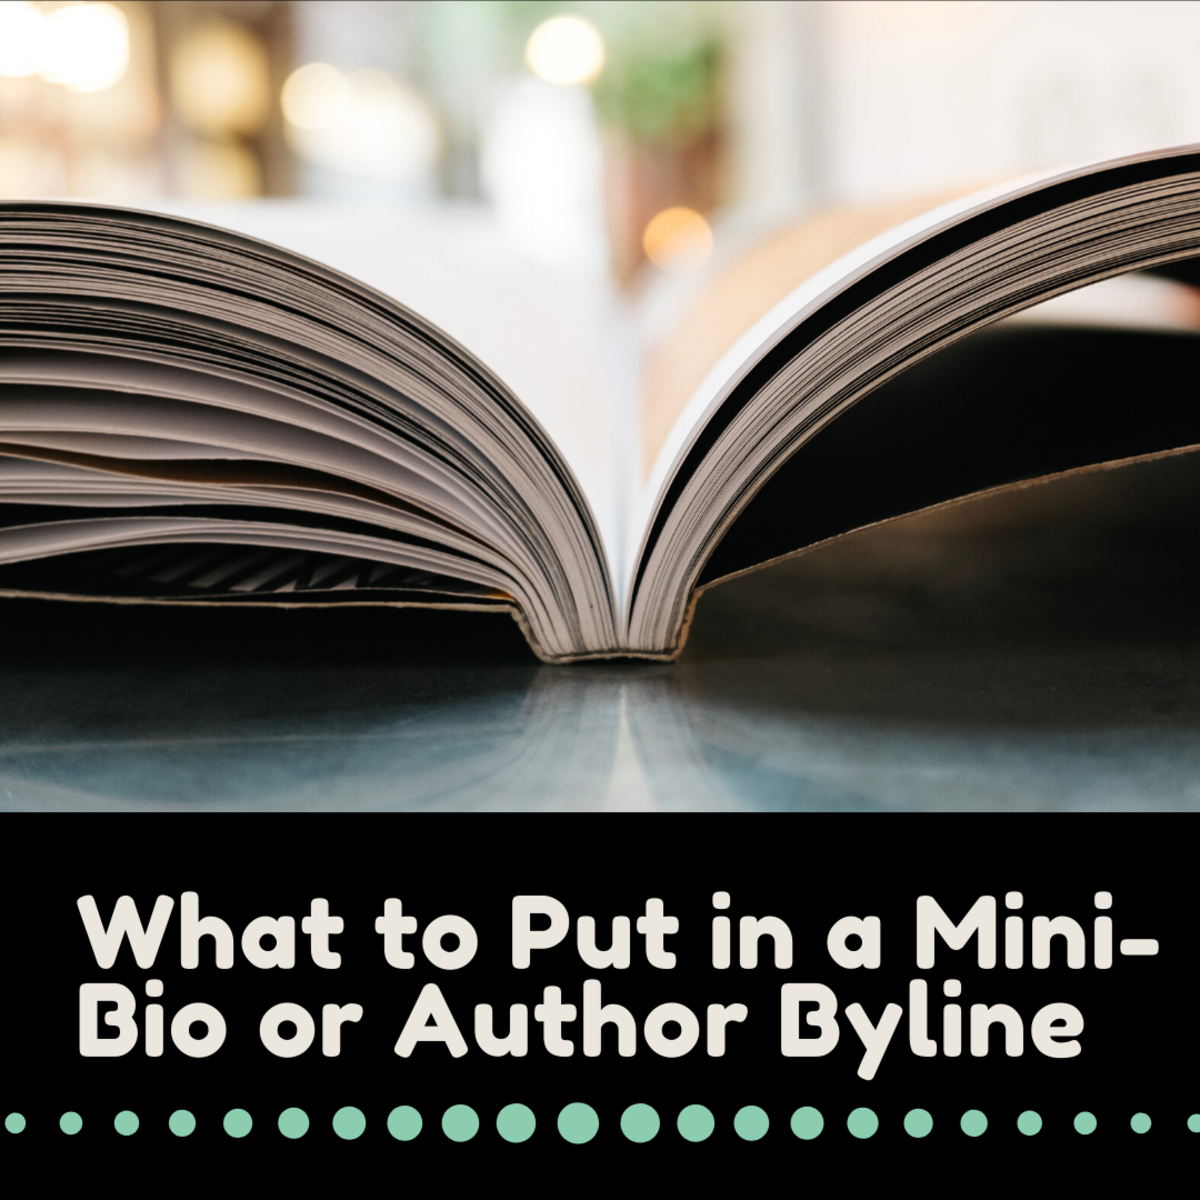 What to Put in a Mini-Bio or Author Byline